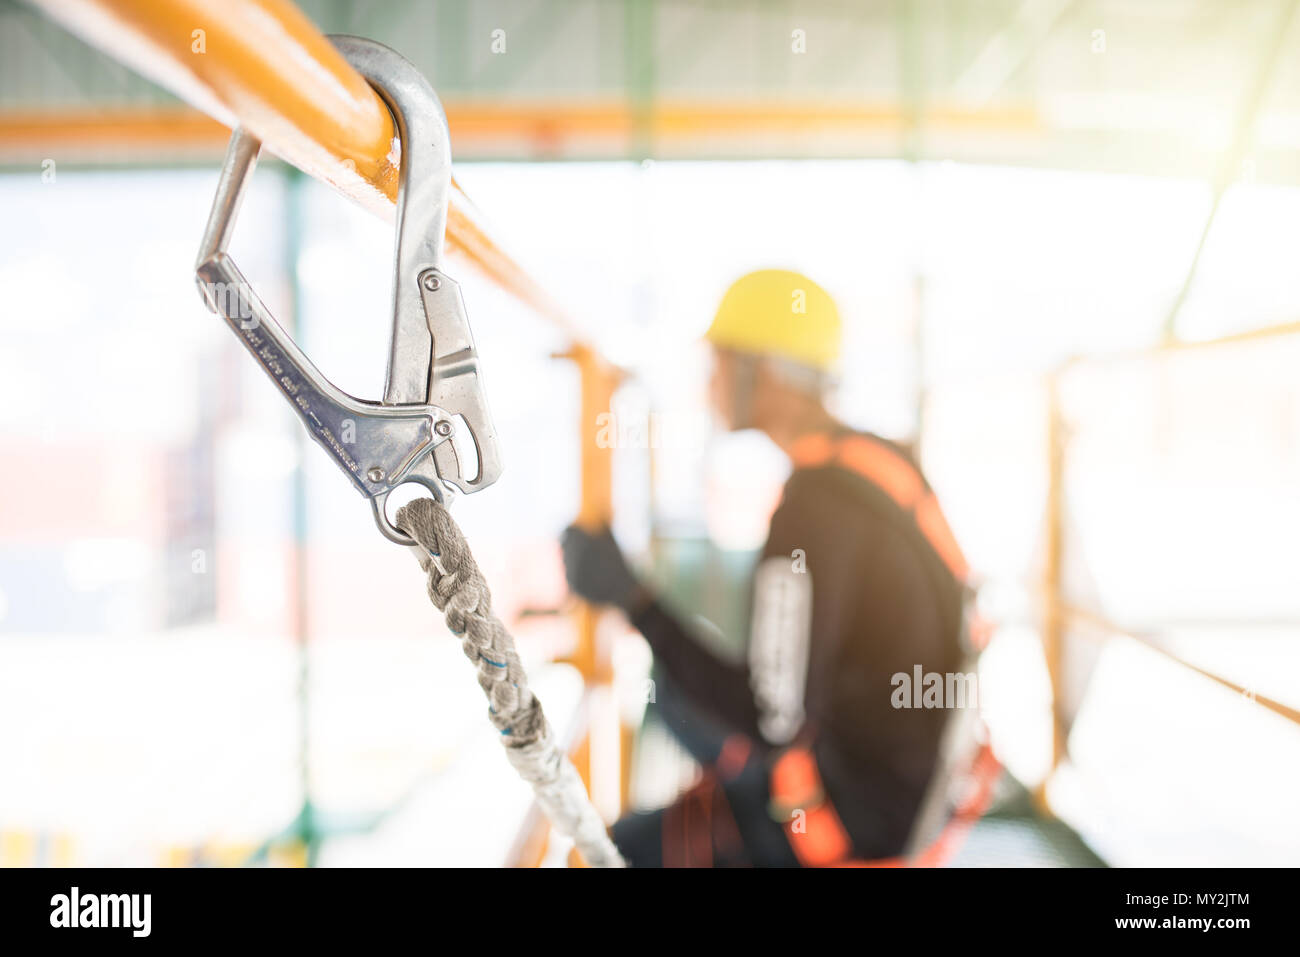 Industrial Worker with safety protective equipment loop hanging on the bar besides, safety concept - Stock Image